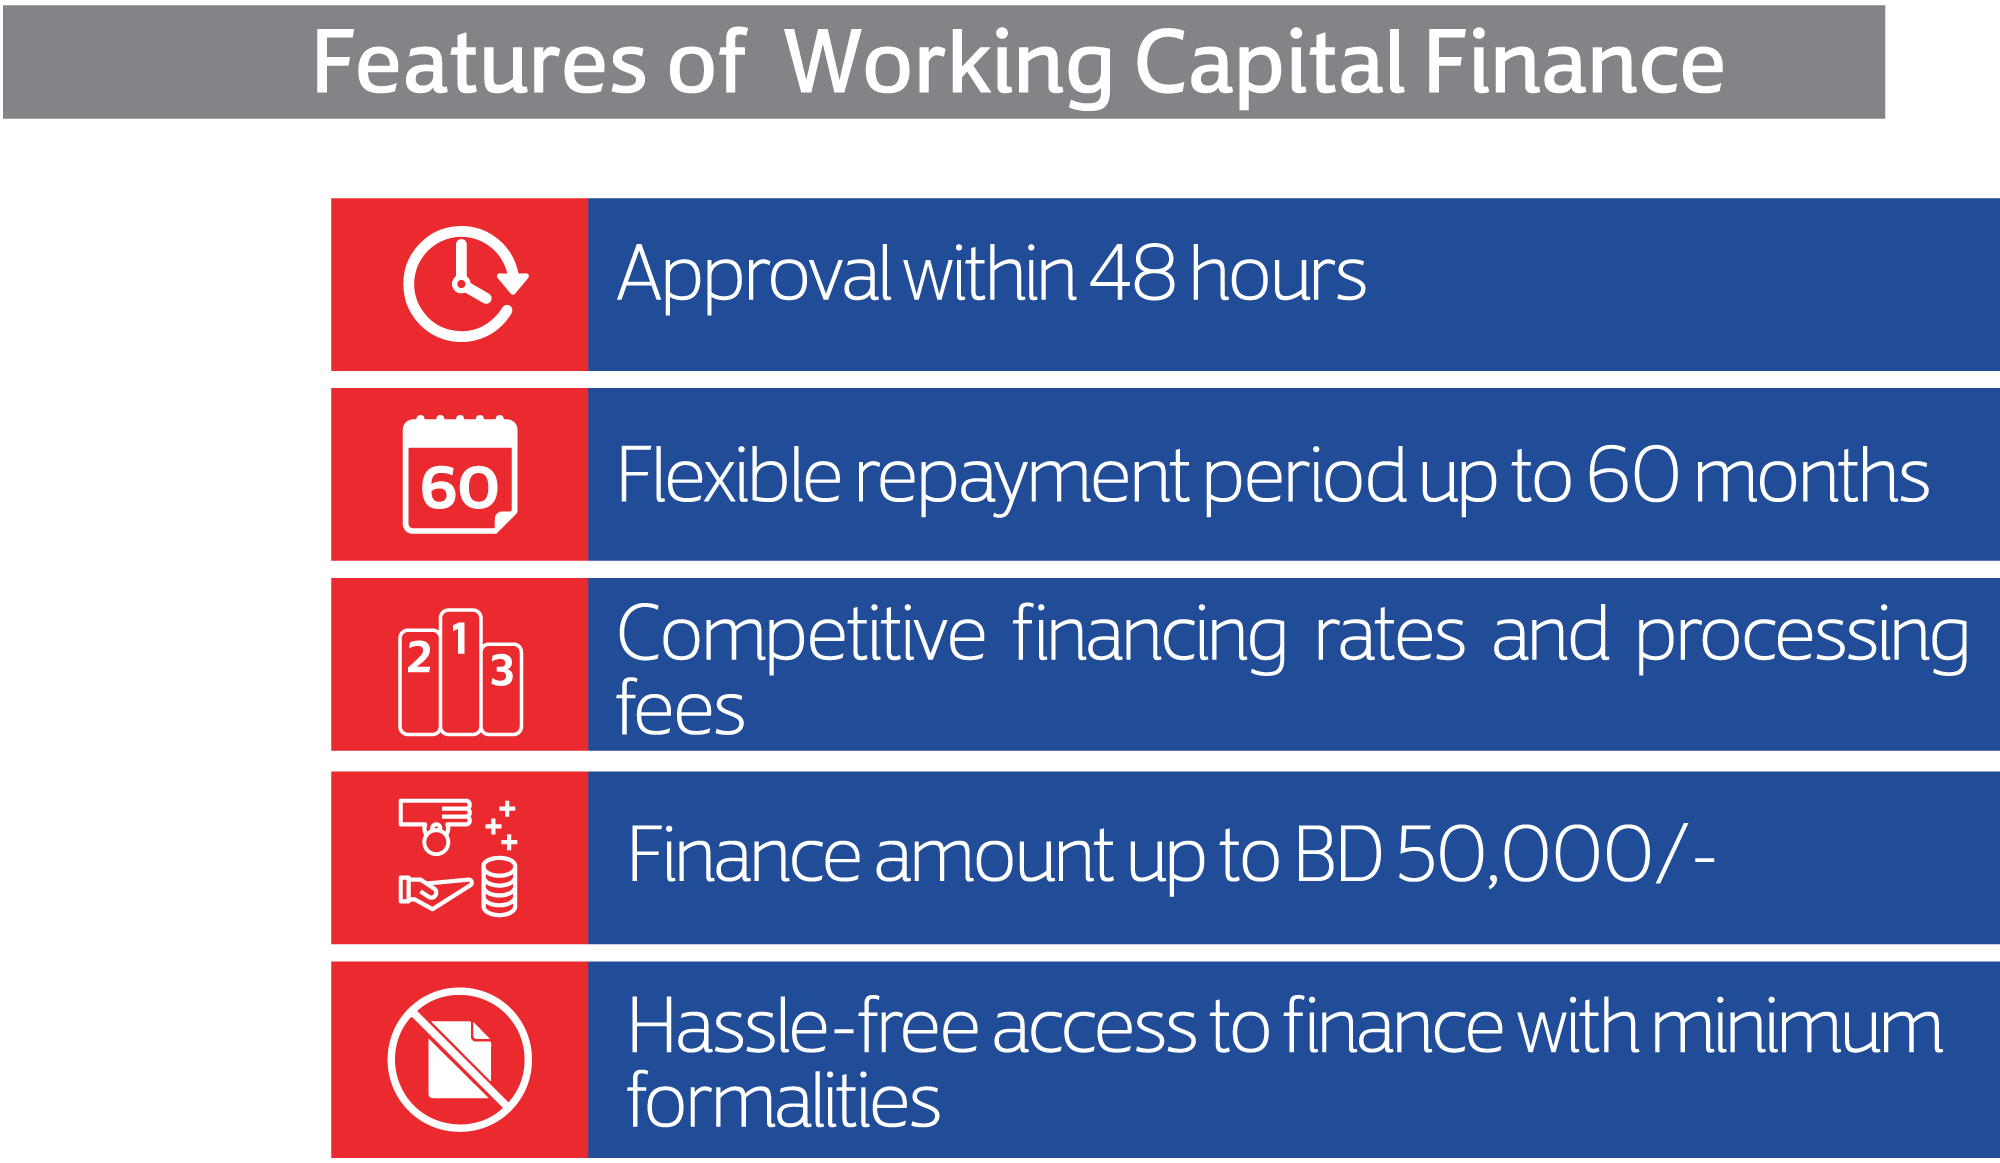 Working-Capital-Finance-feature.png